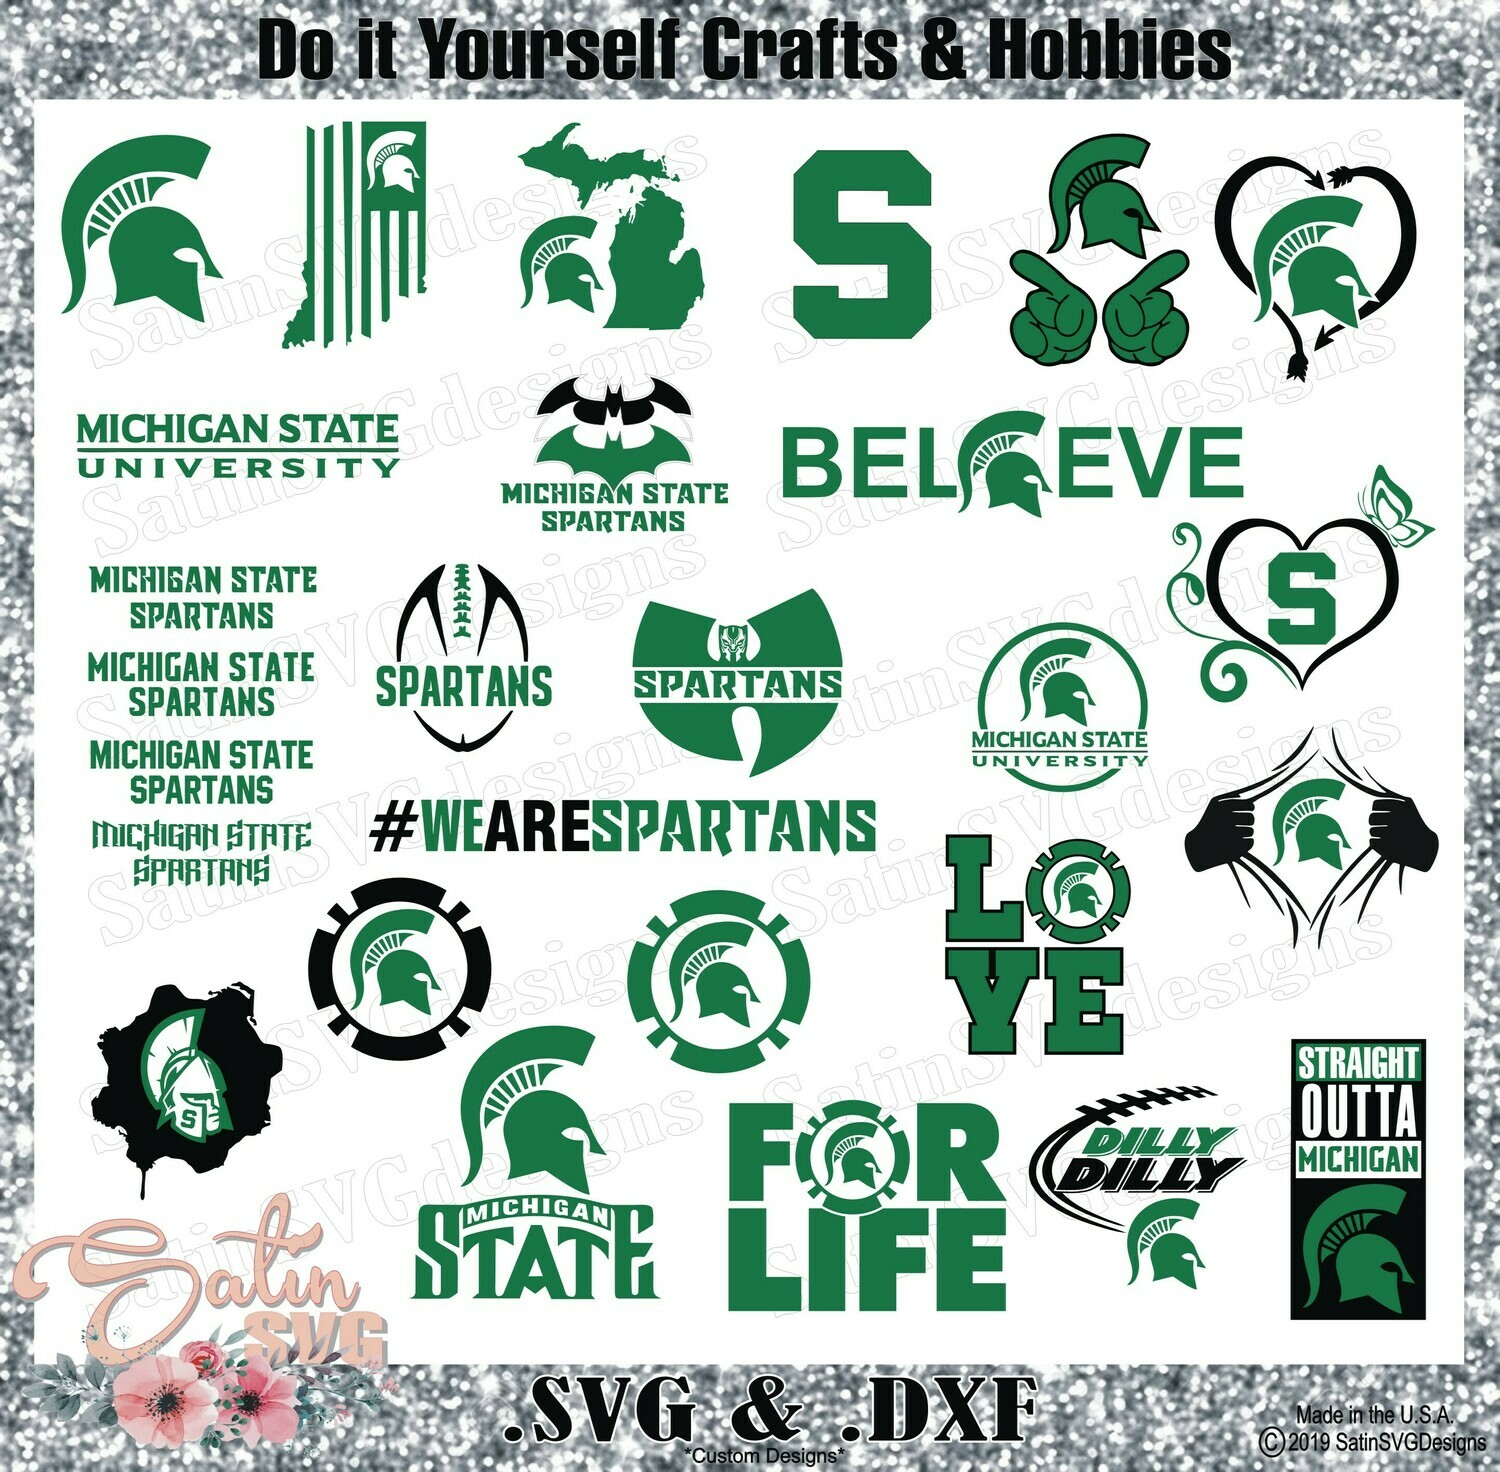 Michigan State Spartan Set Design SVG Files, Cricut, Silhouette Studio, Digital Cut Files